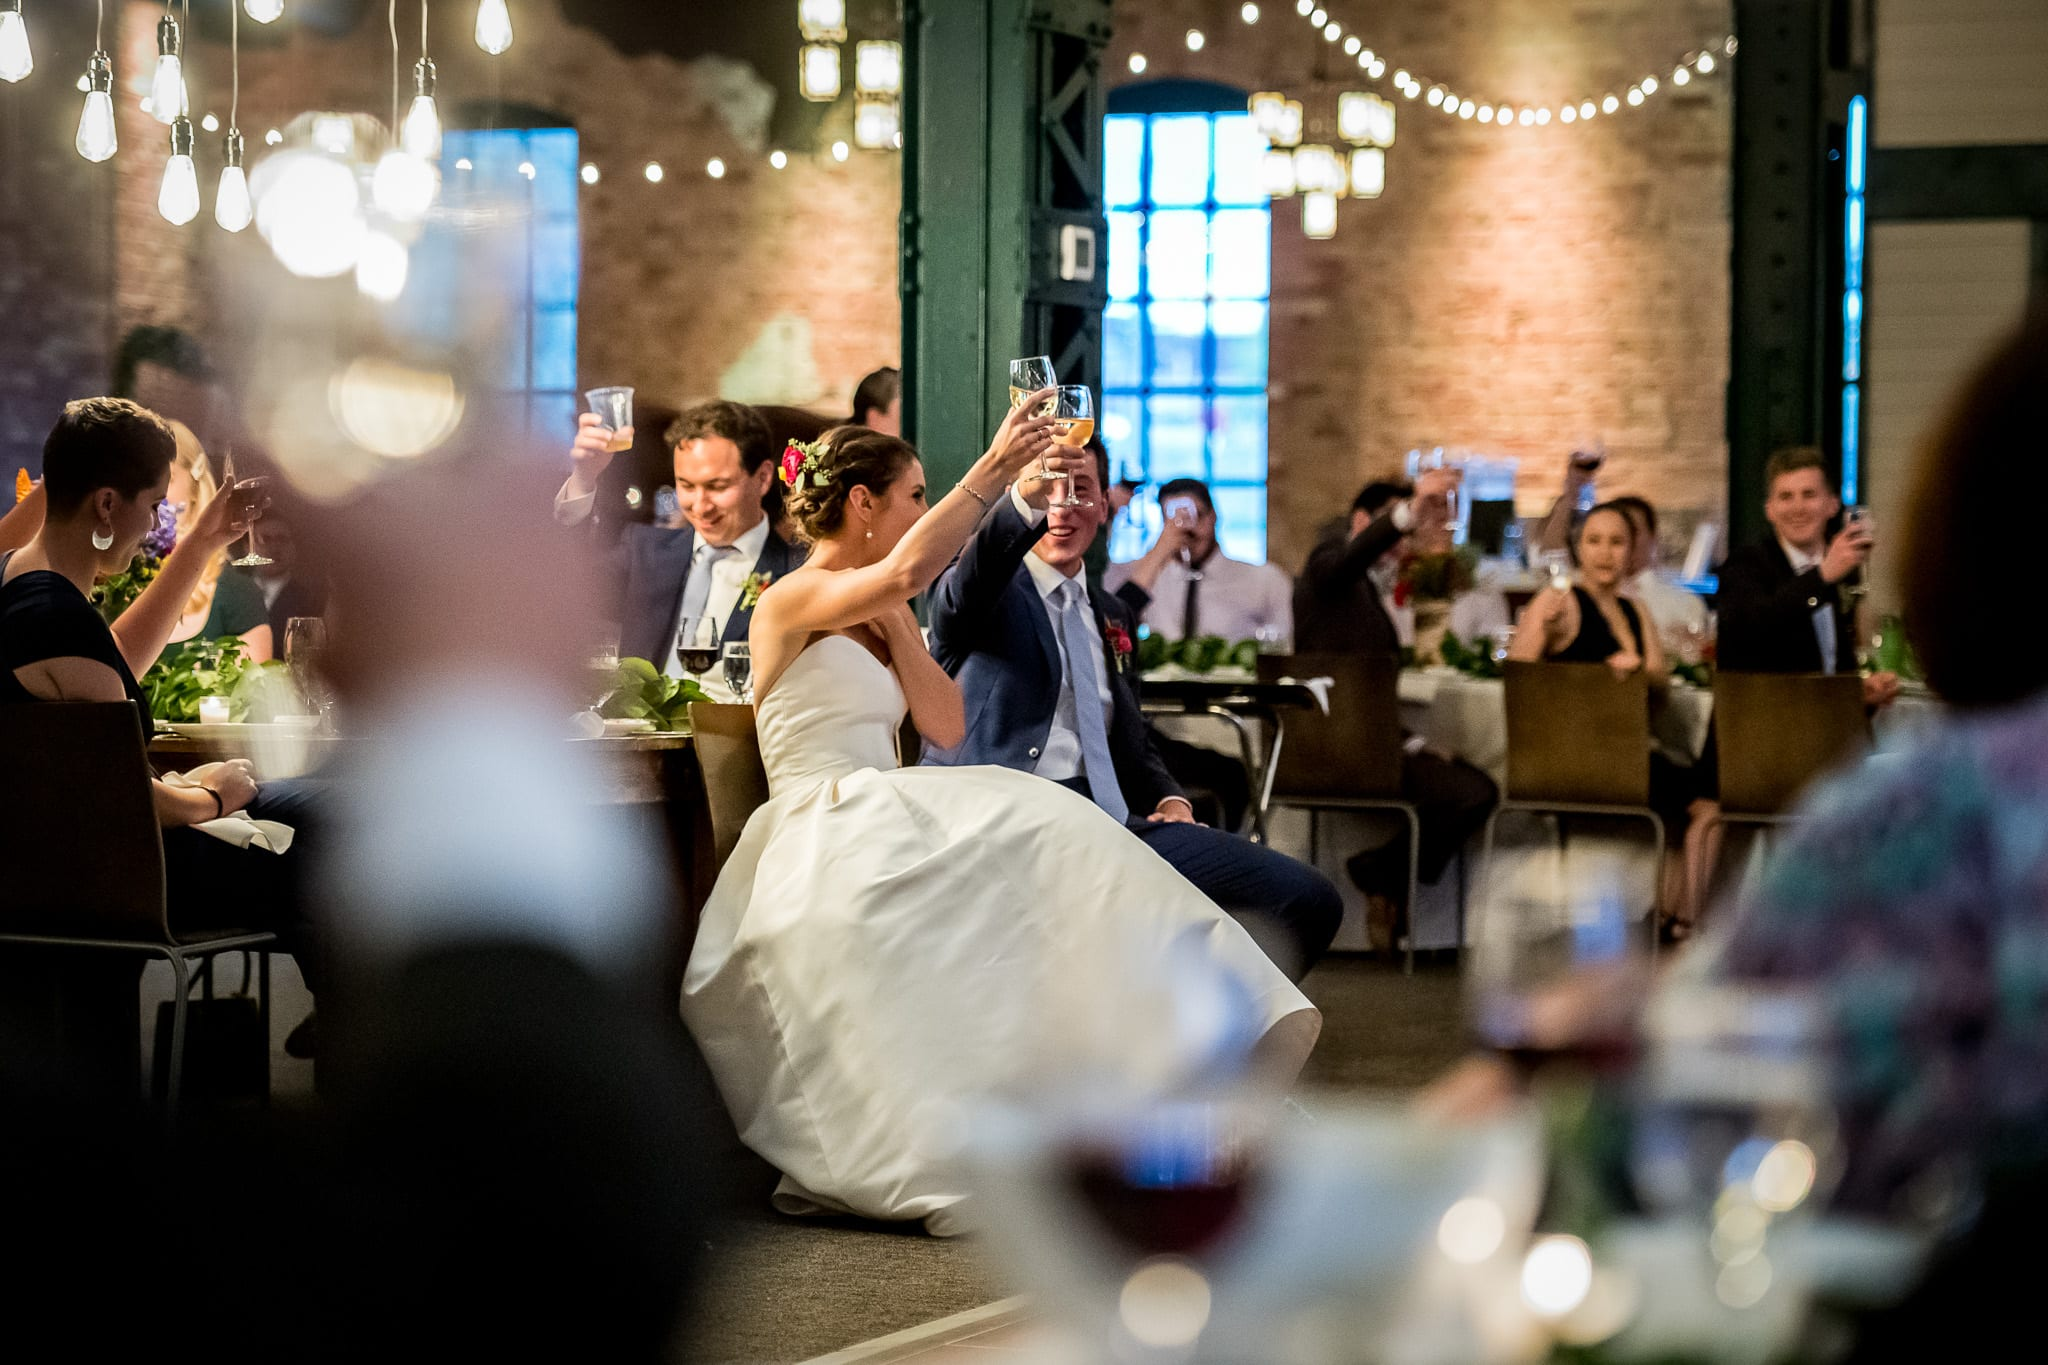 Many arms raised to cheers showing the large area inside of the Nicollet Island Pavilion during a summer wedding reception